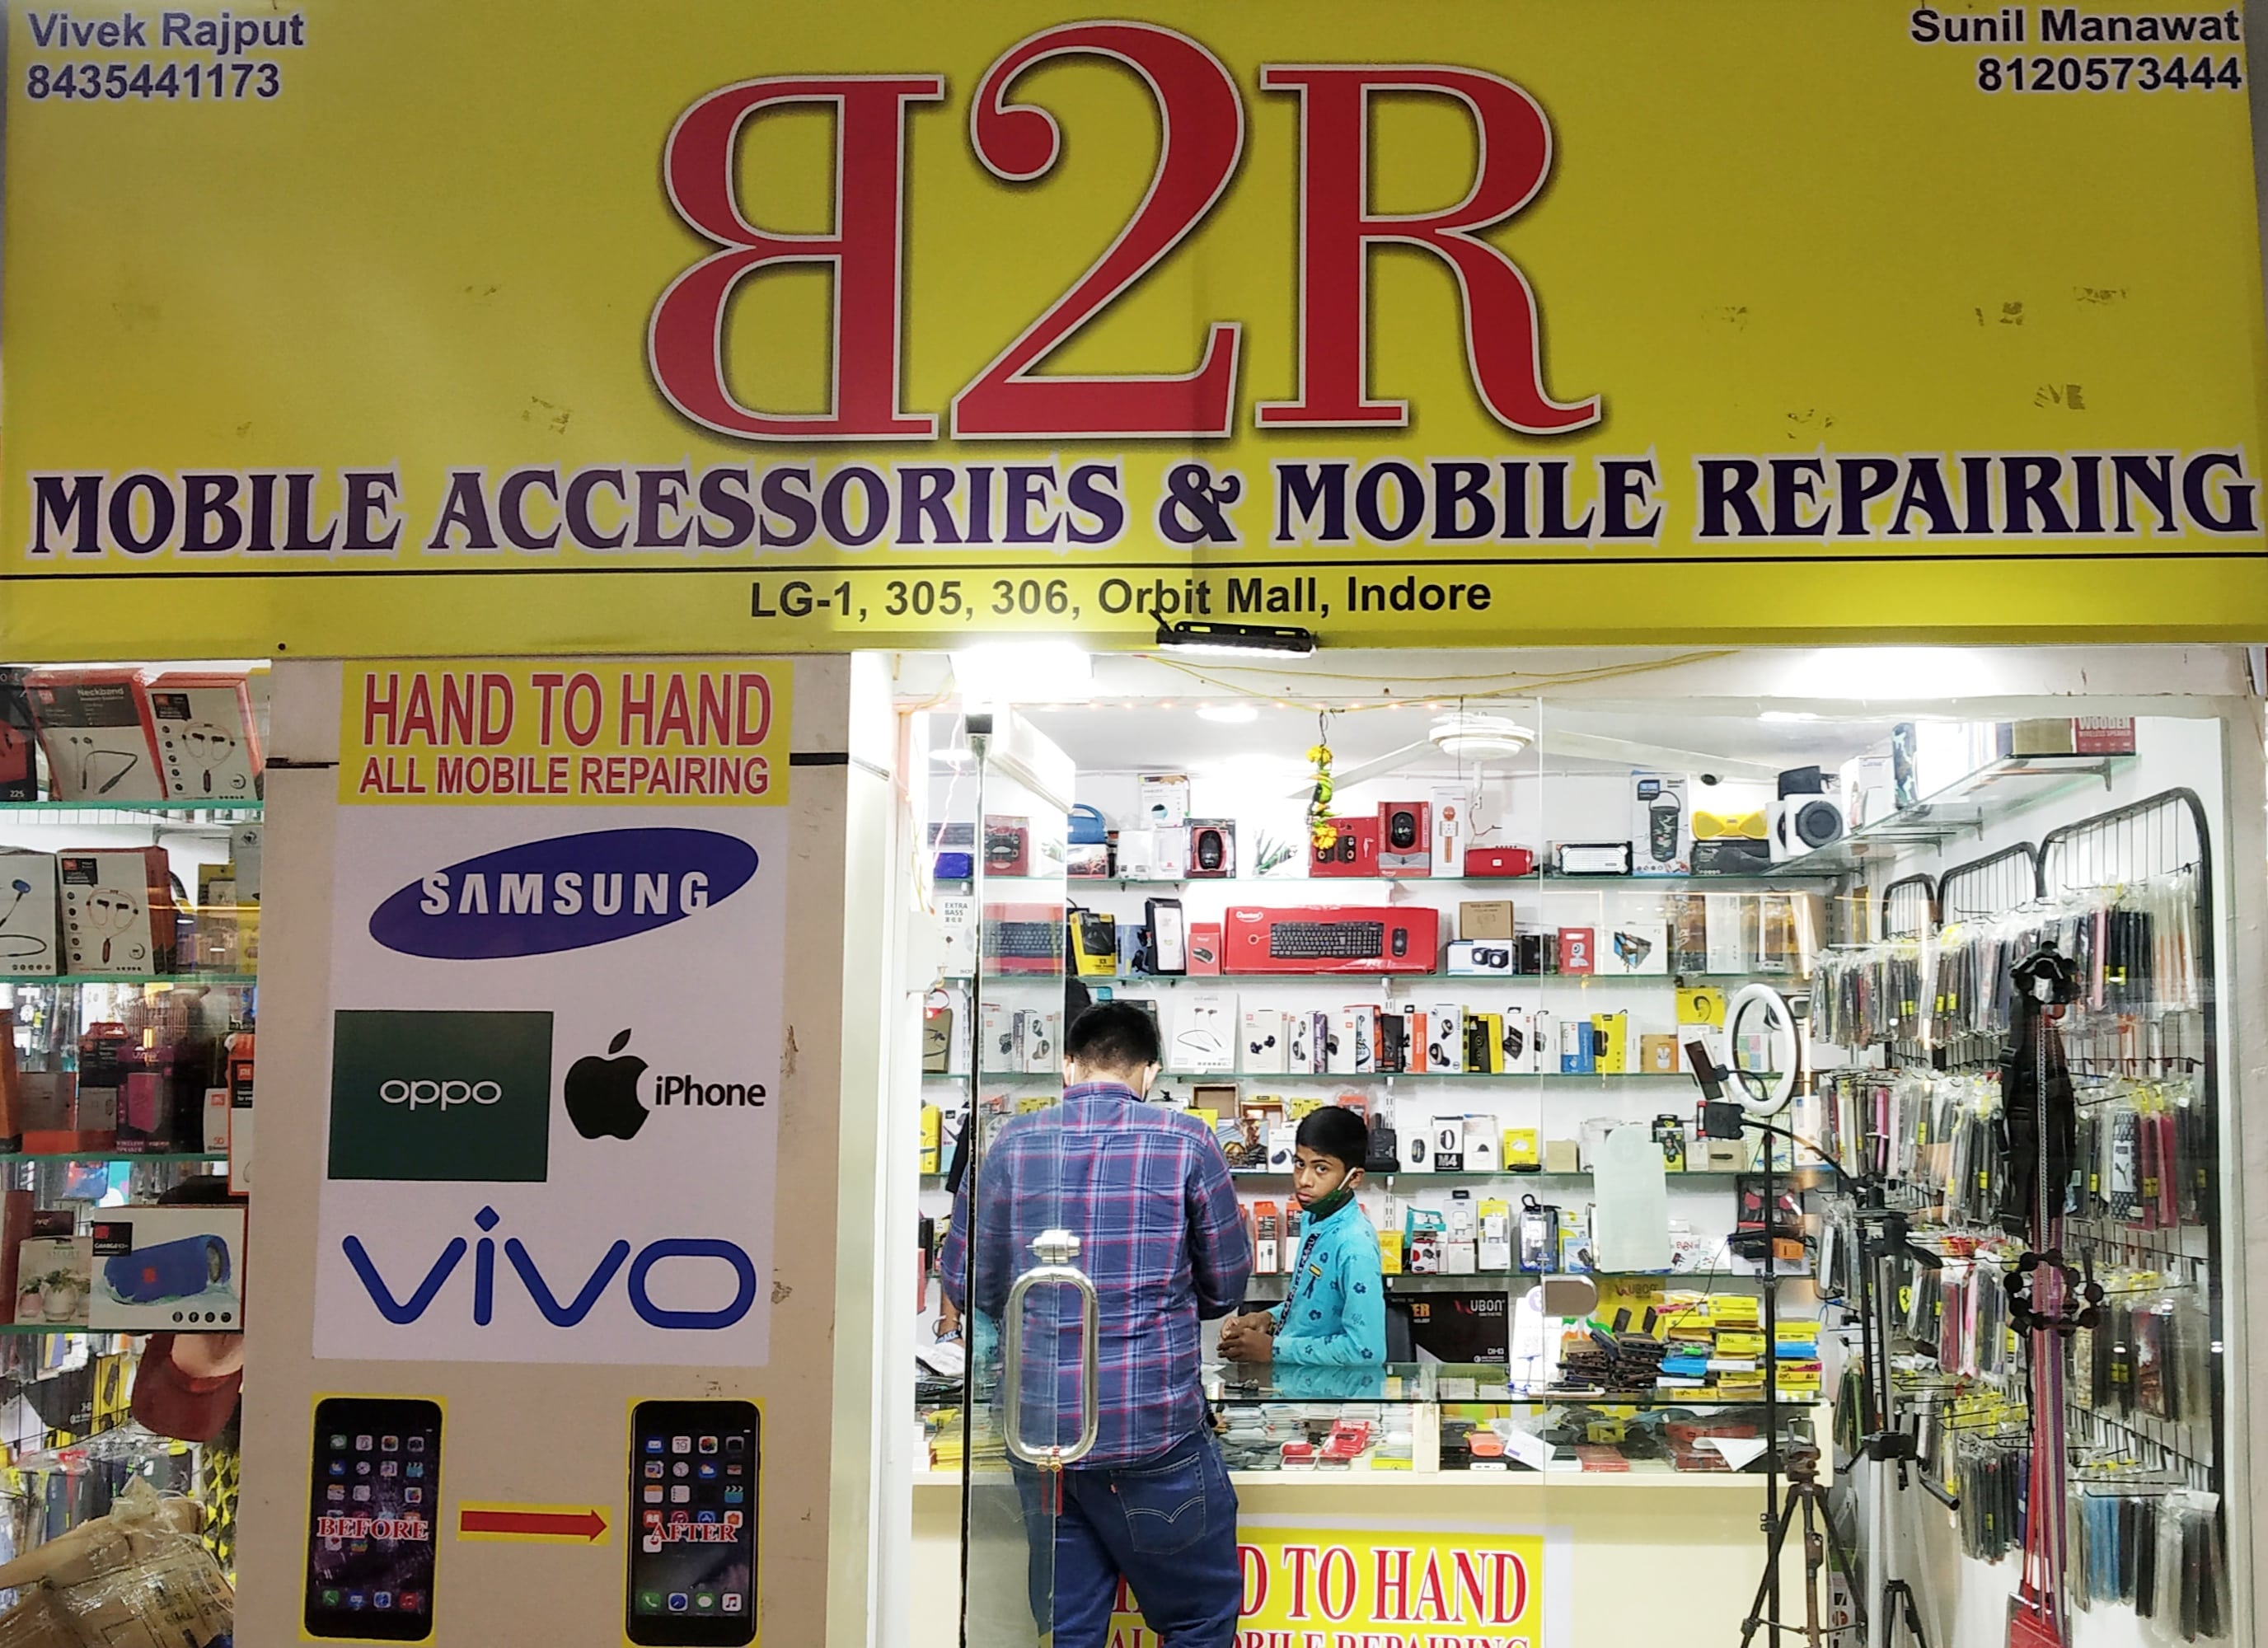 B2R MOBILE ACCESSORIES AND REPAIRING